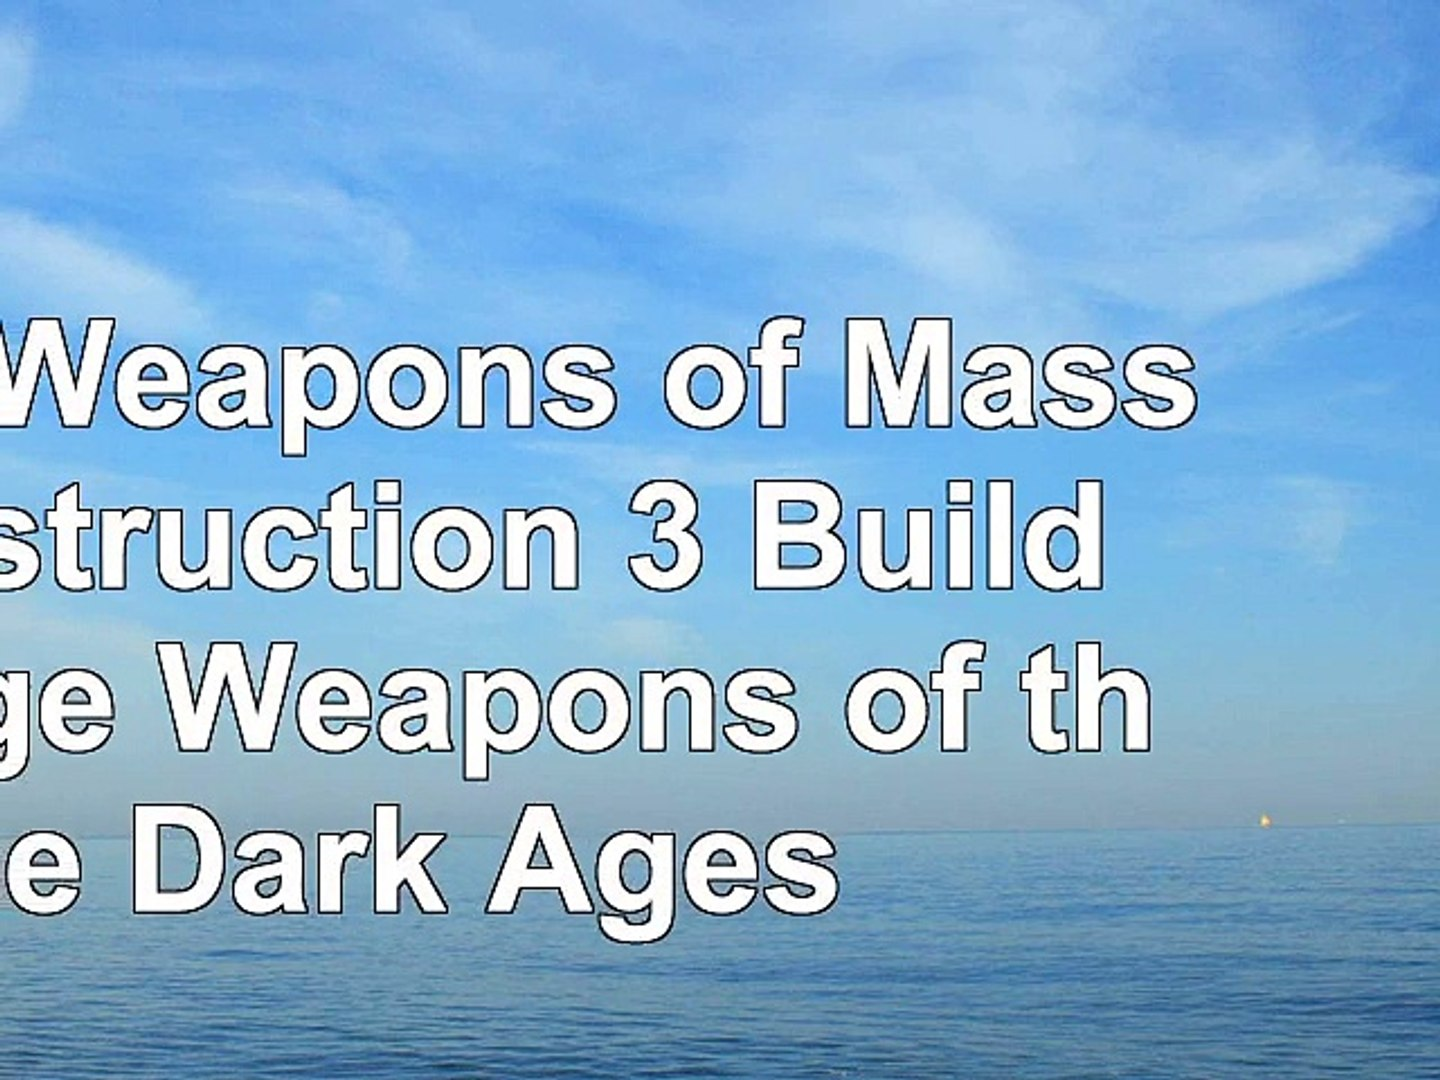 Download  Mini Weapons of Mass Destruction 3 Build Siege Weapons of the Dark Ages 167f48fb